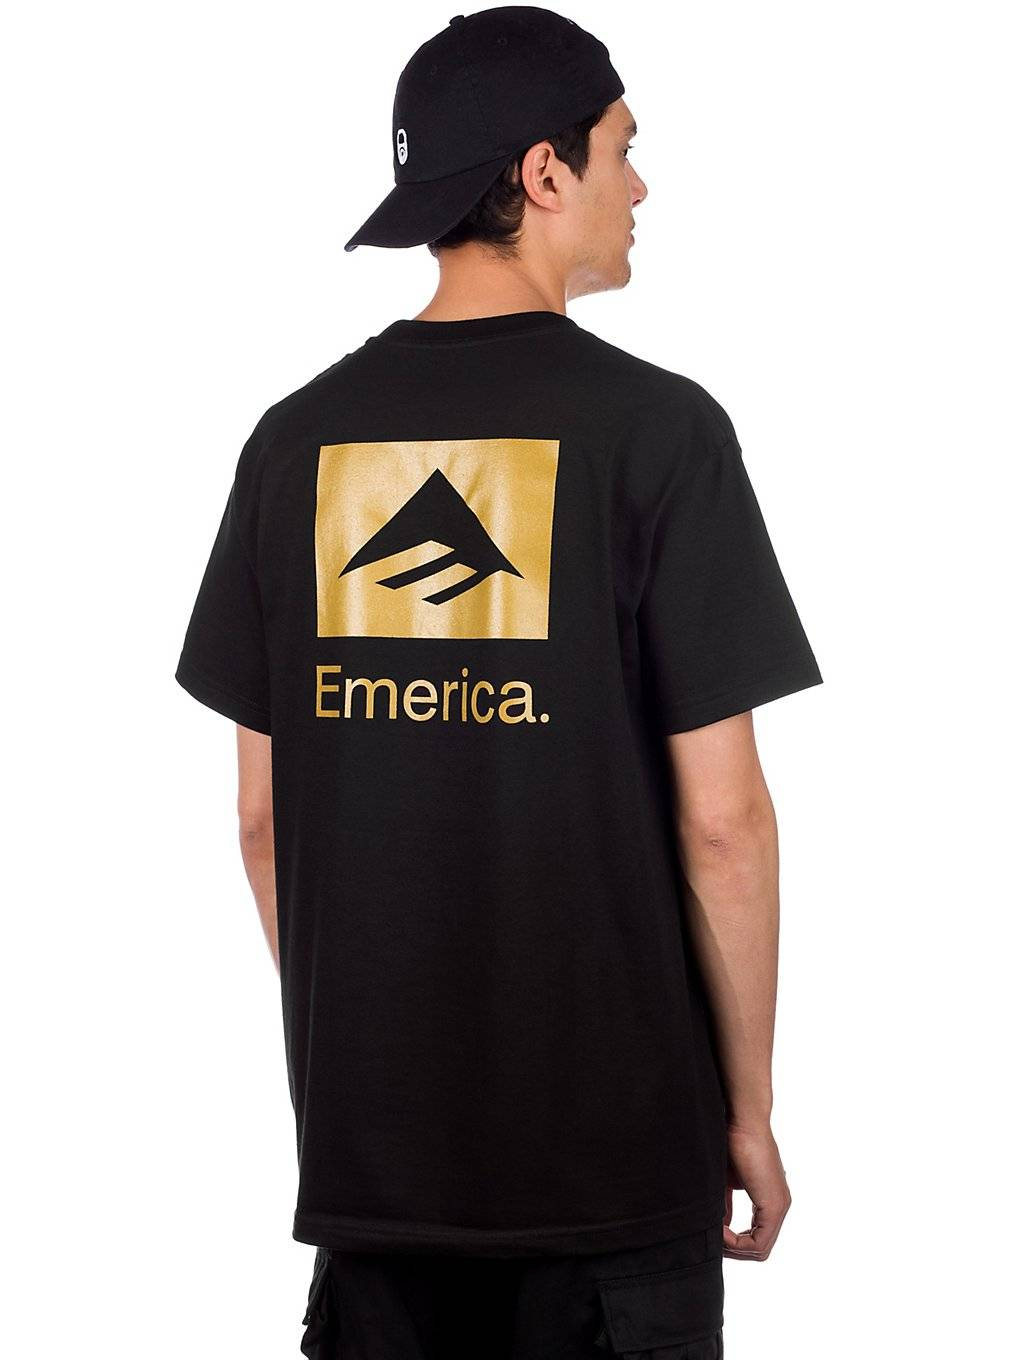 Emerica Brand Stack T-Shirt musta  - black/gold